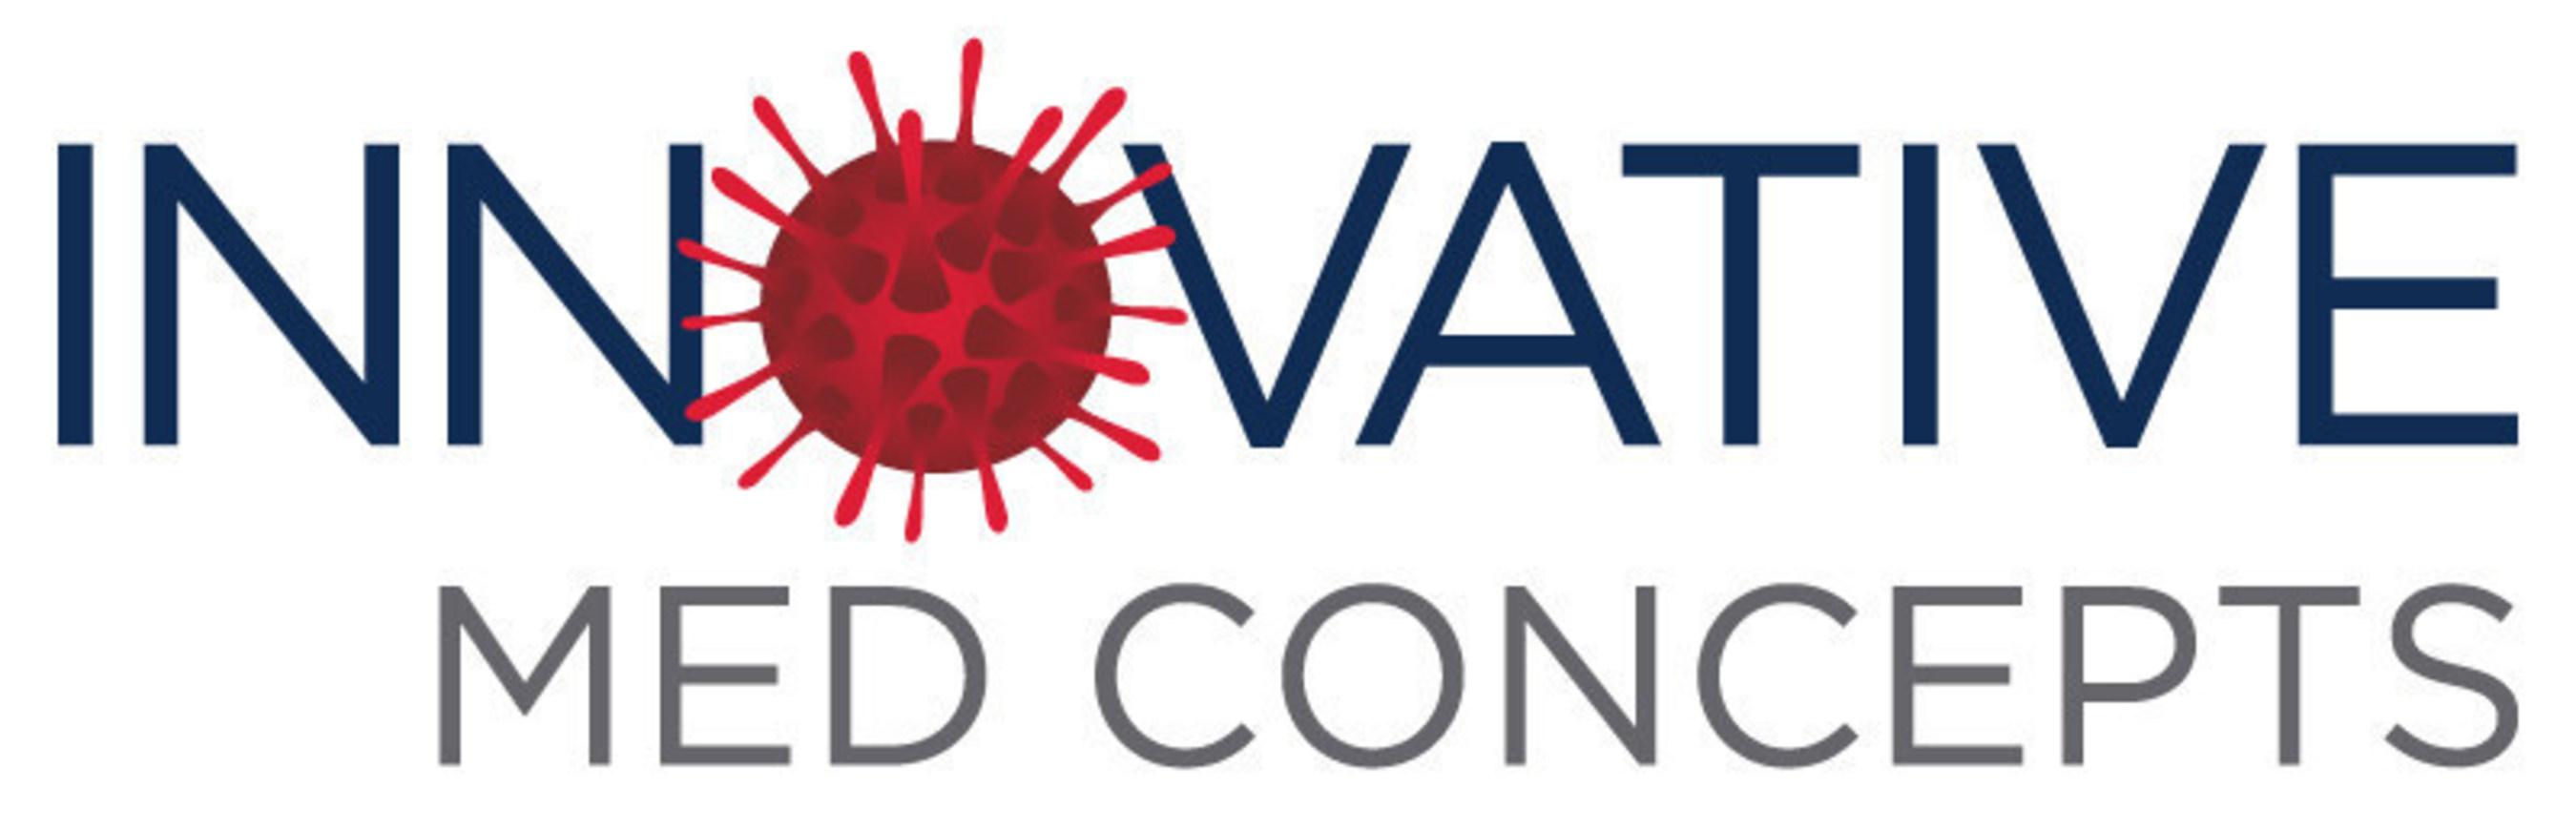 Innovative Med Concepts Announces Receipt of FDA Fast Track Designation for IMC-1, a Novel